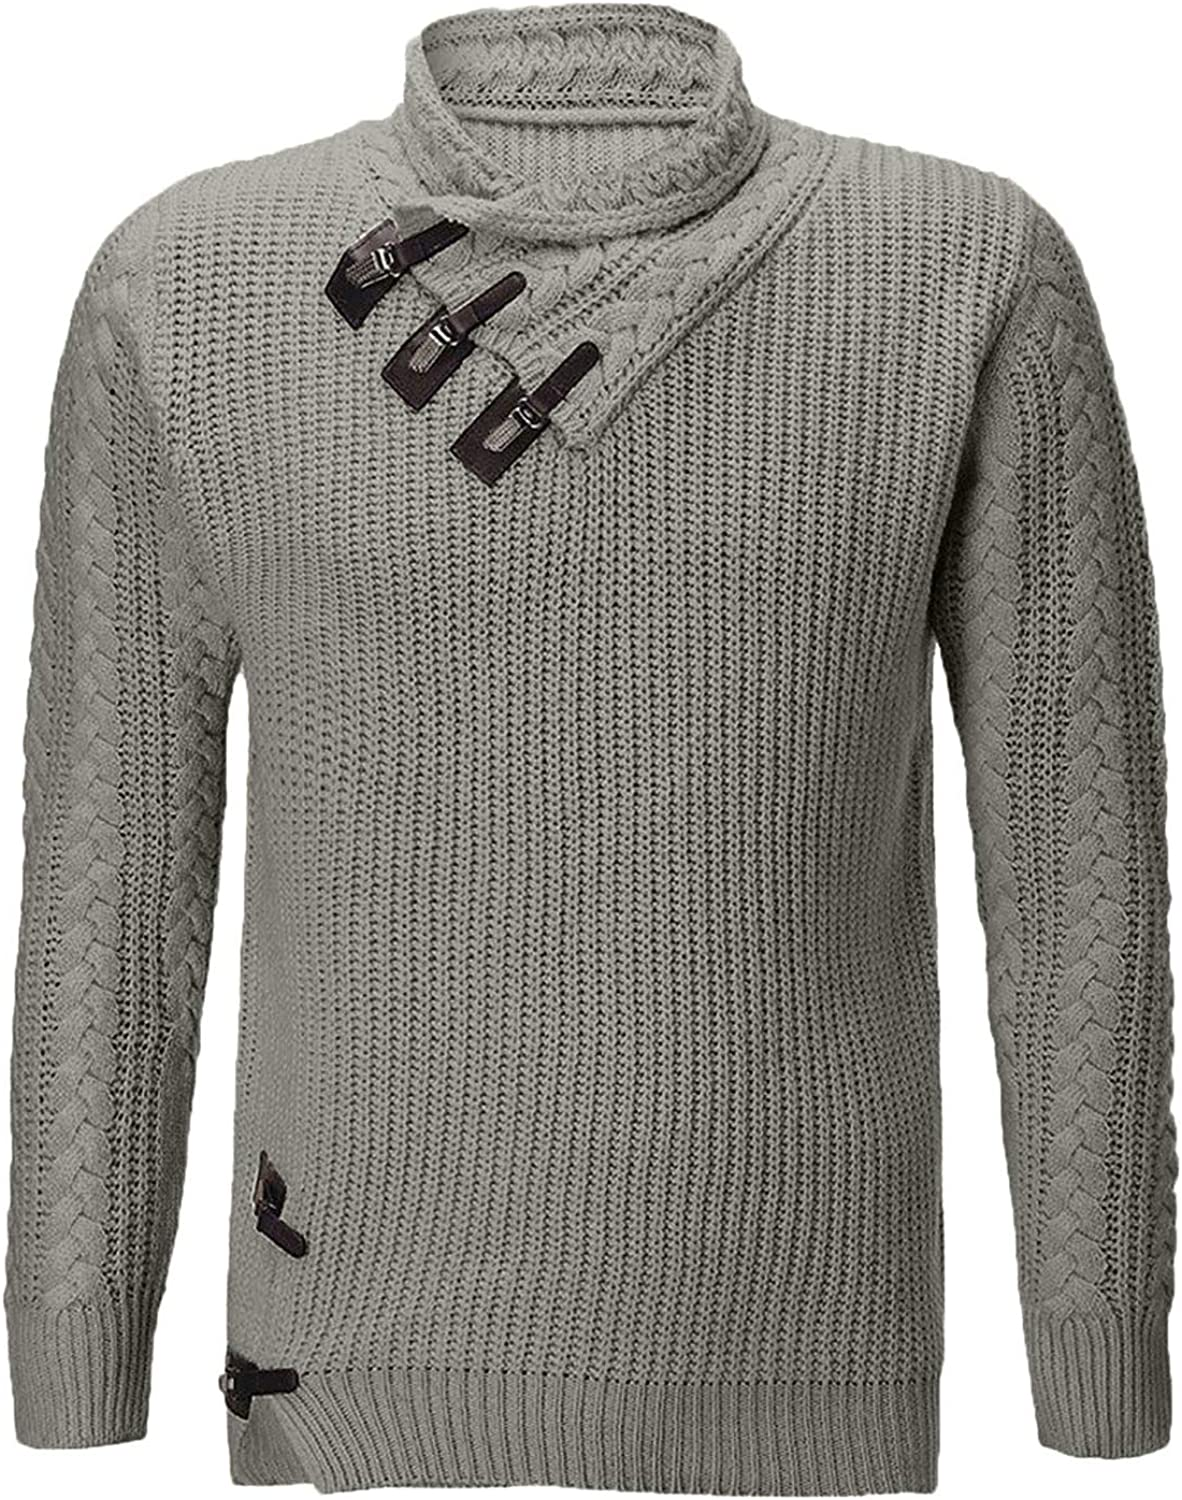 Men's Novelty Fashion Sweaters High Sleeve Max 75% OFF NEW before selling Pullover Long Neck Fi